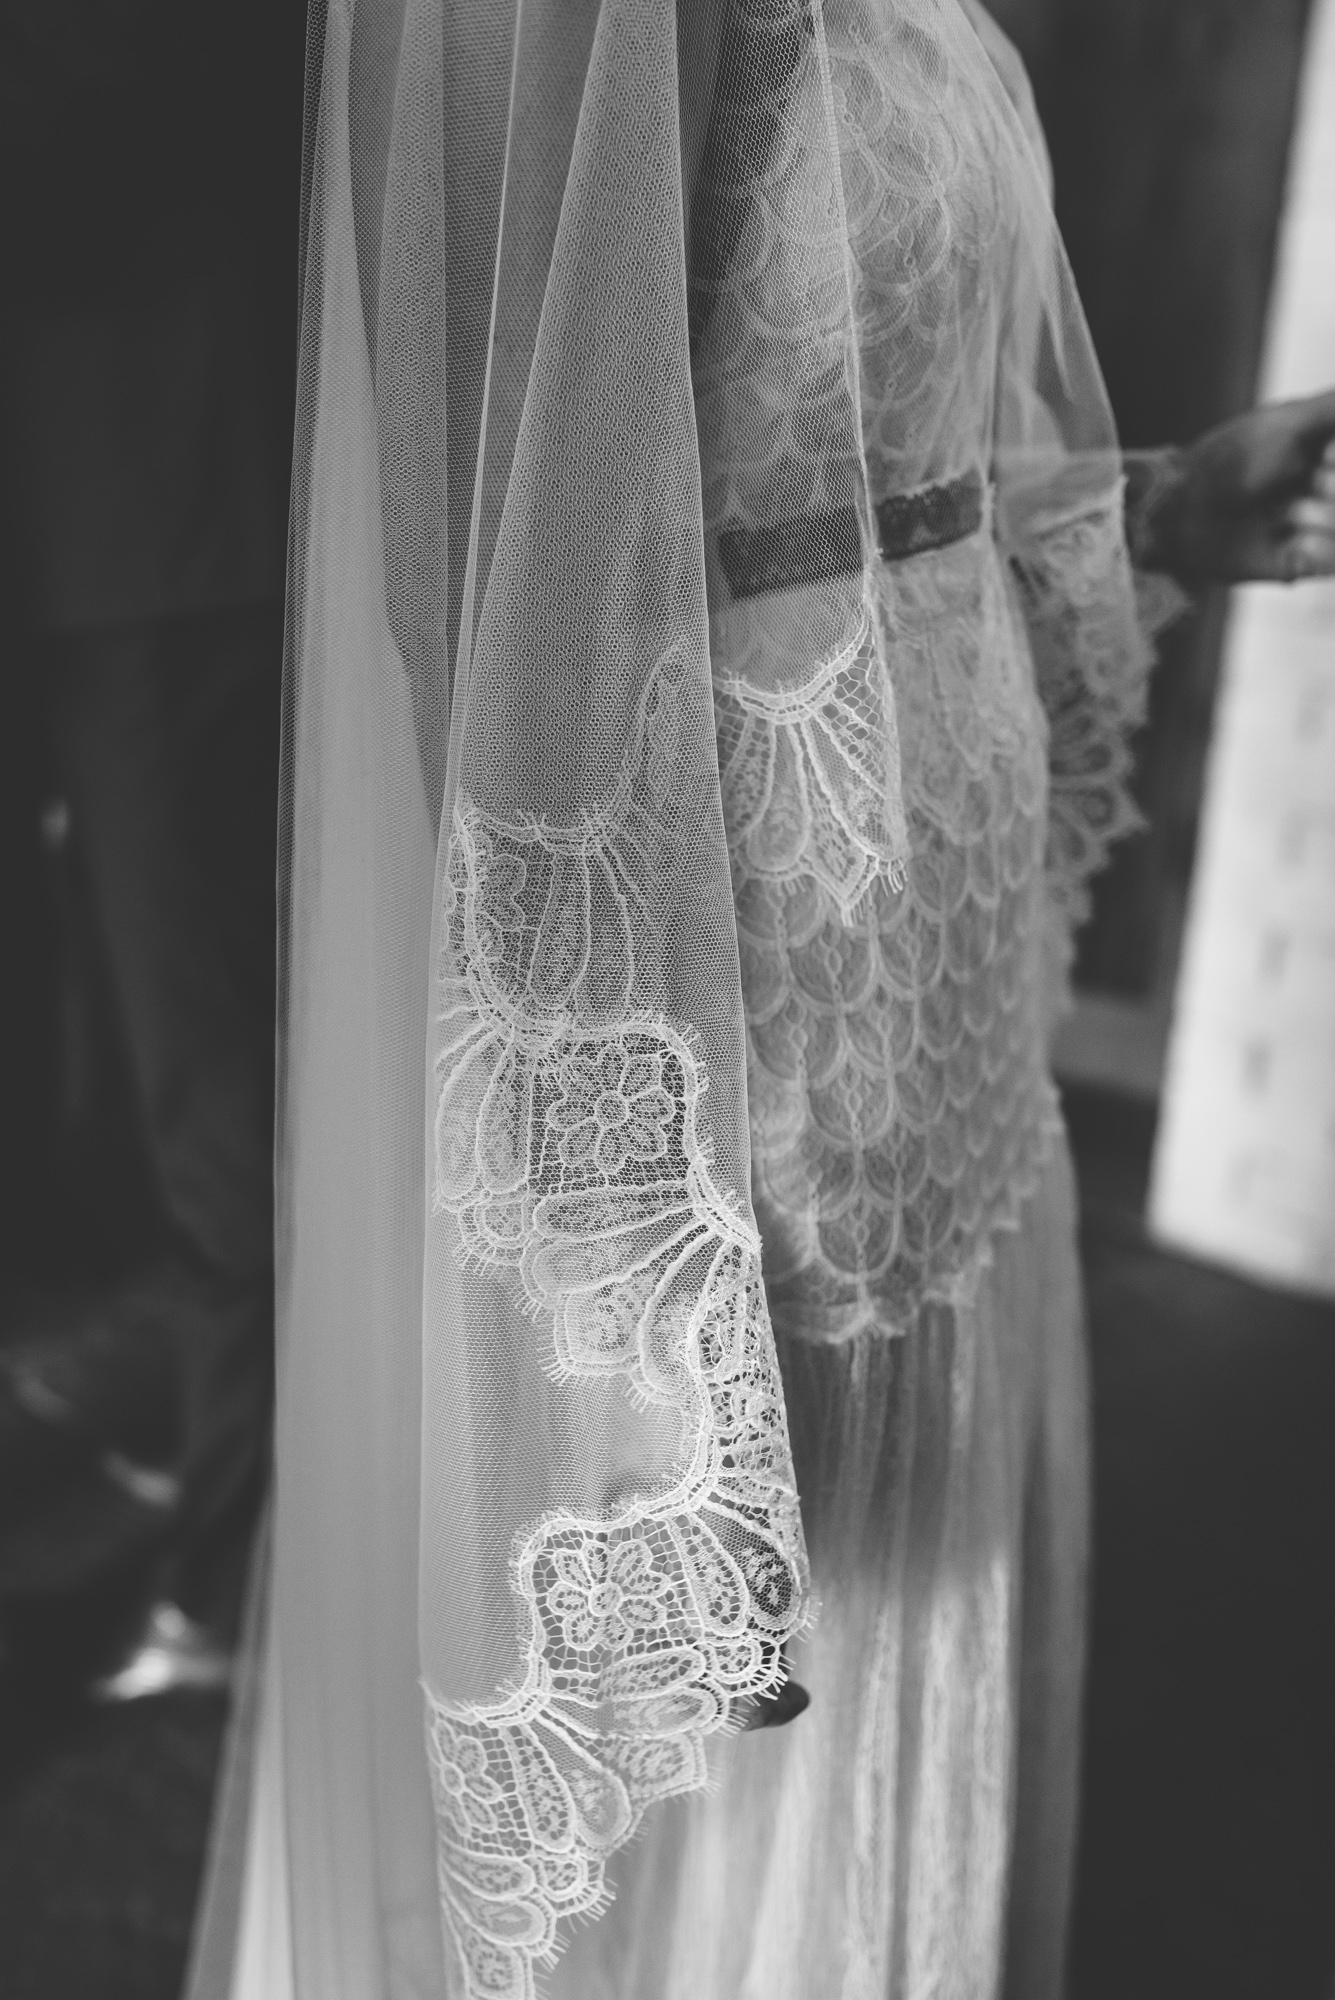 Kate-Beaumont-Sheffield-Lucy-Bohemian-Lace-Dress-Barn-Wedding-Cumbria-33.jpg